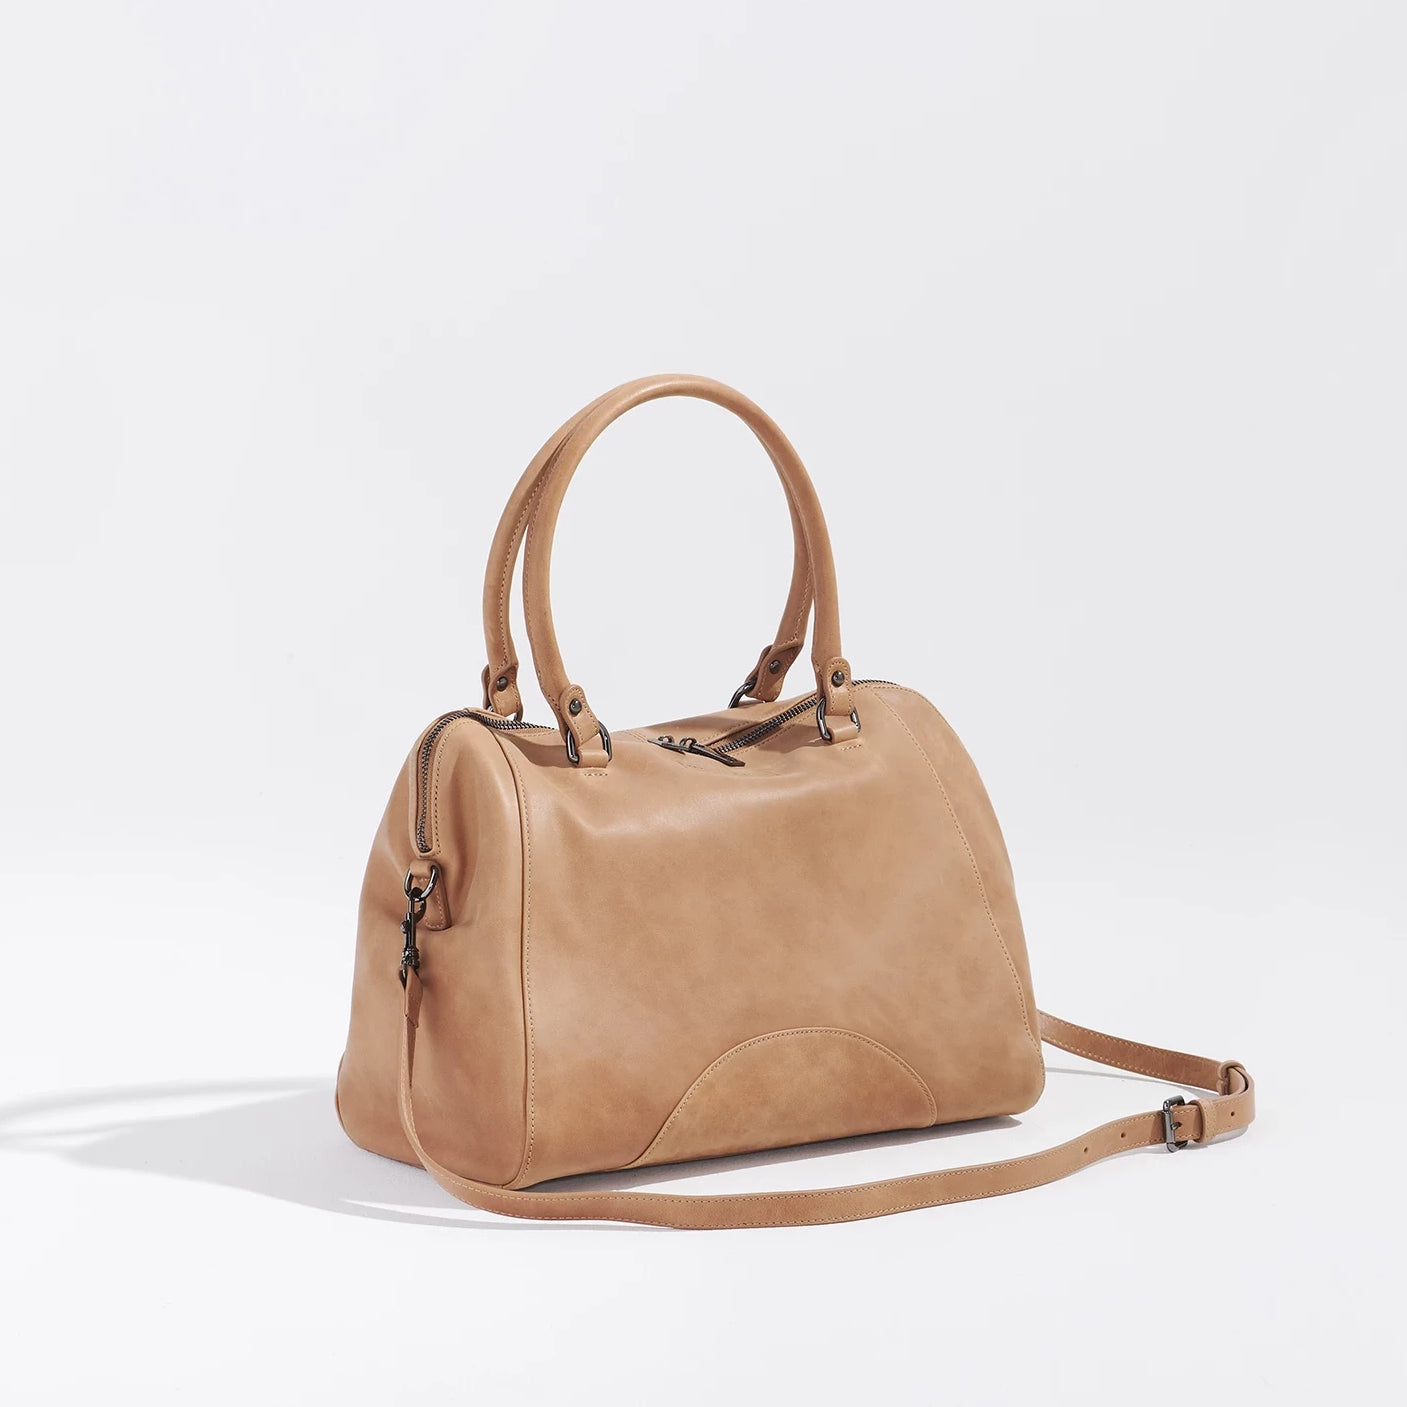 The Moonrise Bag - Toffee